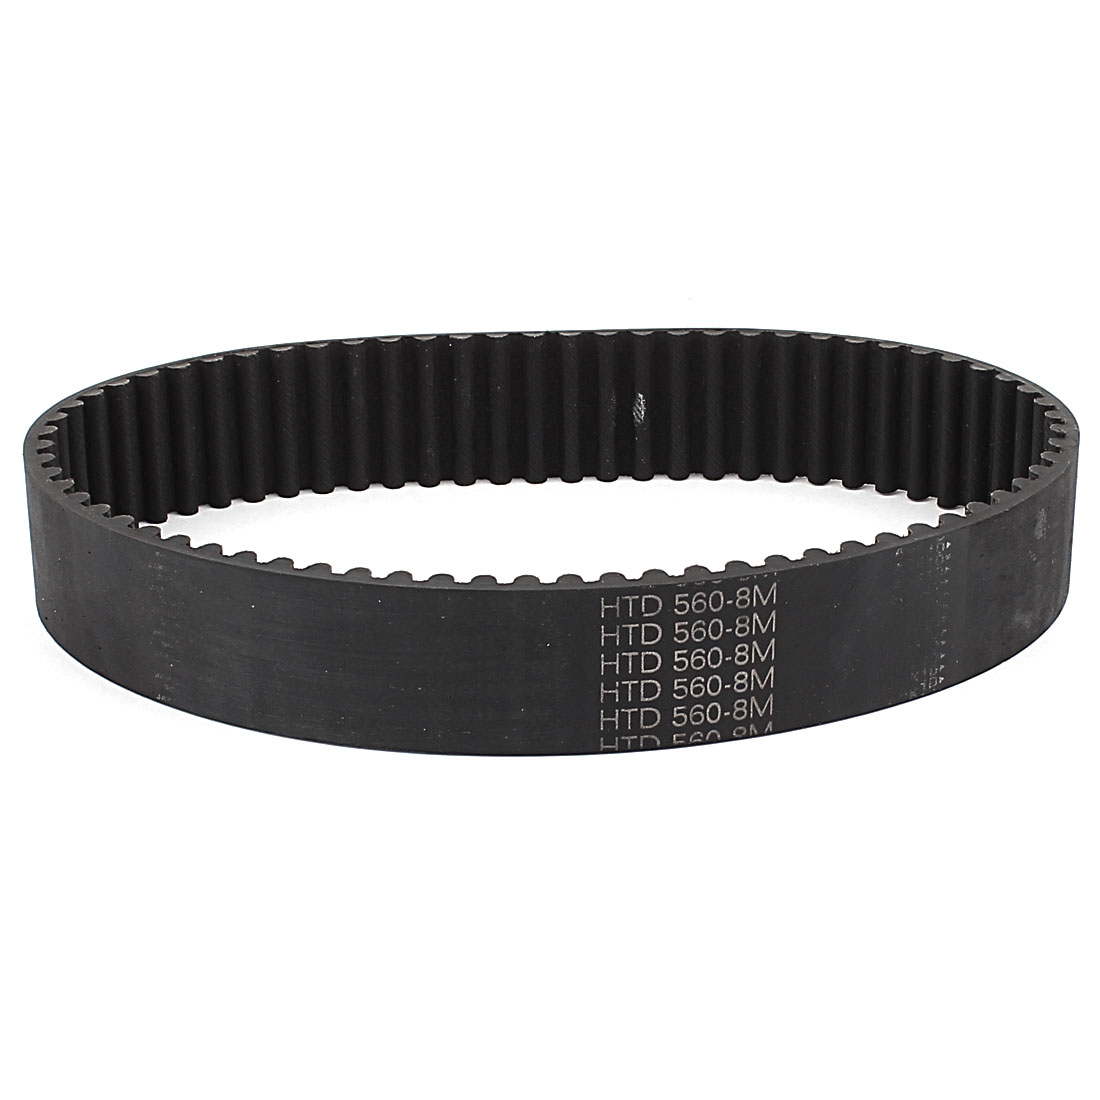 8M-560 560mm Girth 70 Teeth 8mm Pitch 34mm Wide Industrial Timing Belt